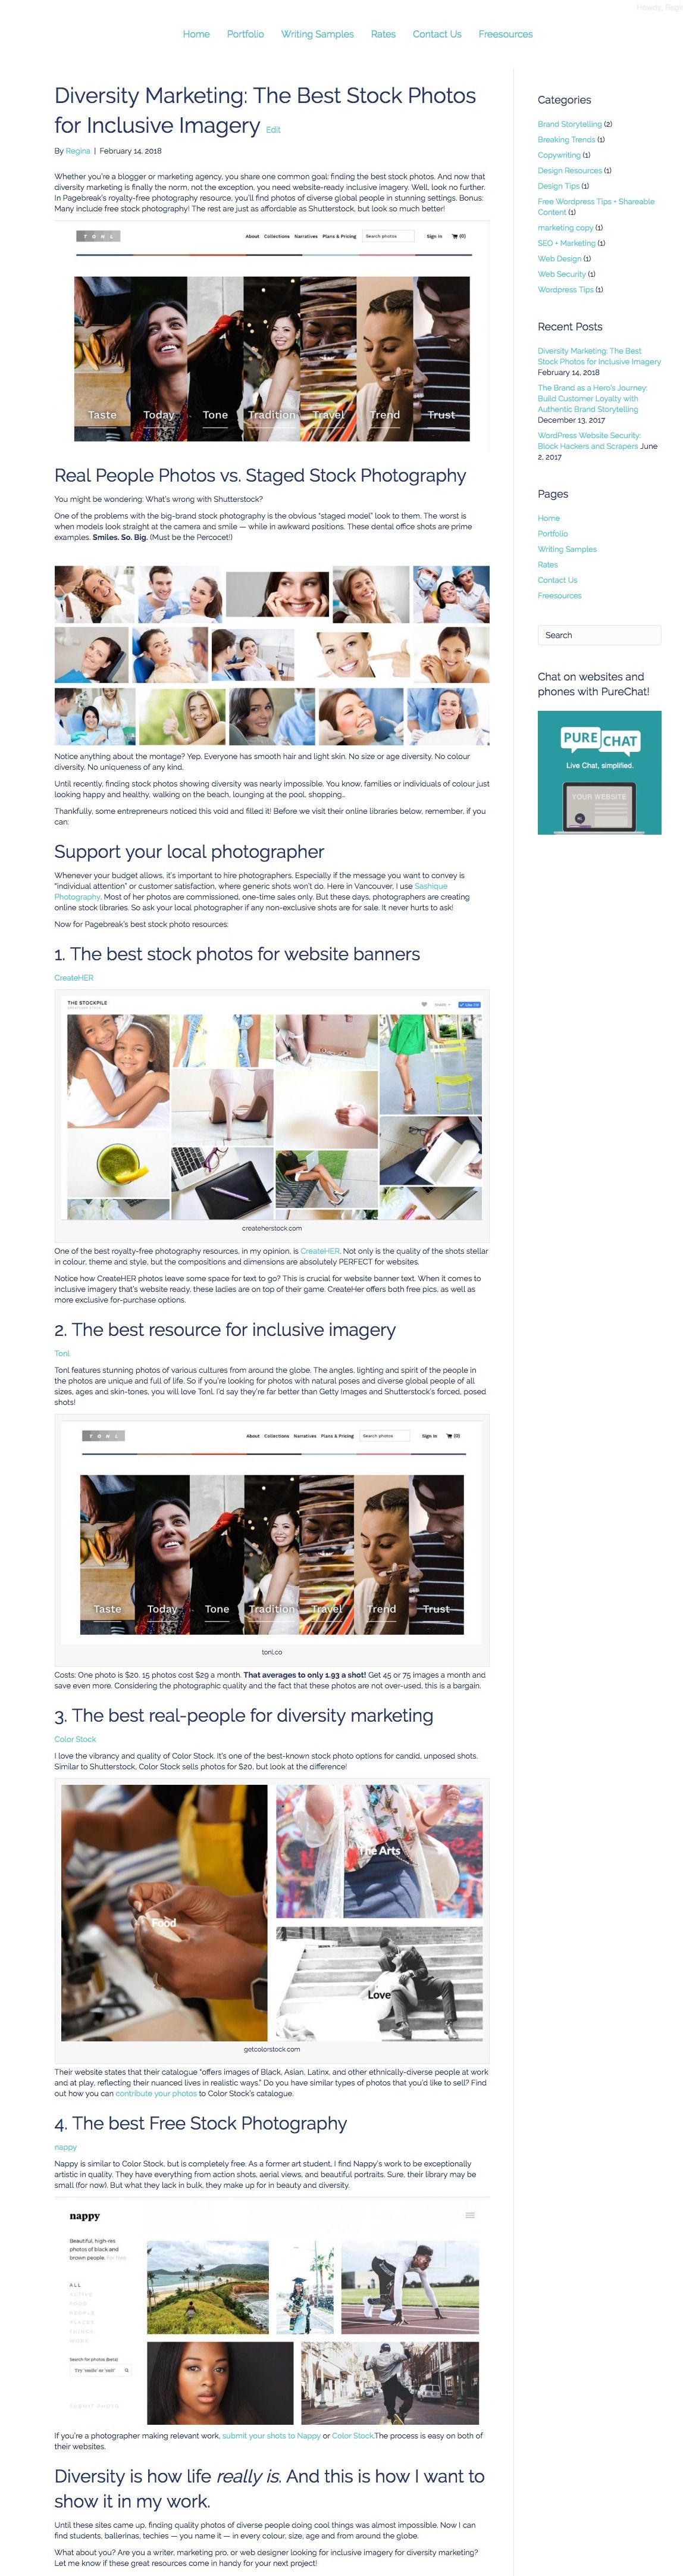 Blog And Linkedin Article Listing The Best Stock Photos For Diversity Marketing For Web Designs Content Marketing Banners And Best Stocks Stock Photos Photo